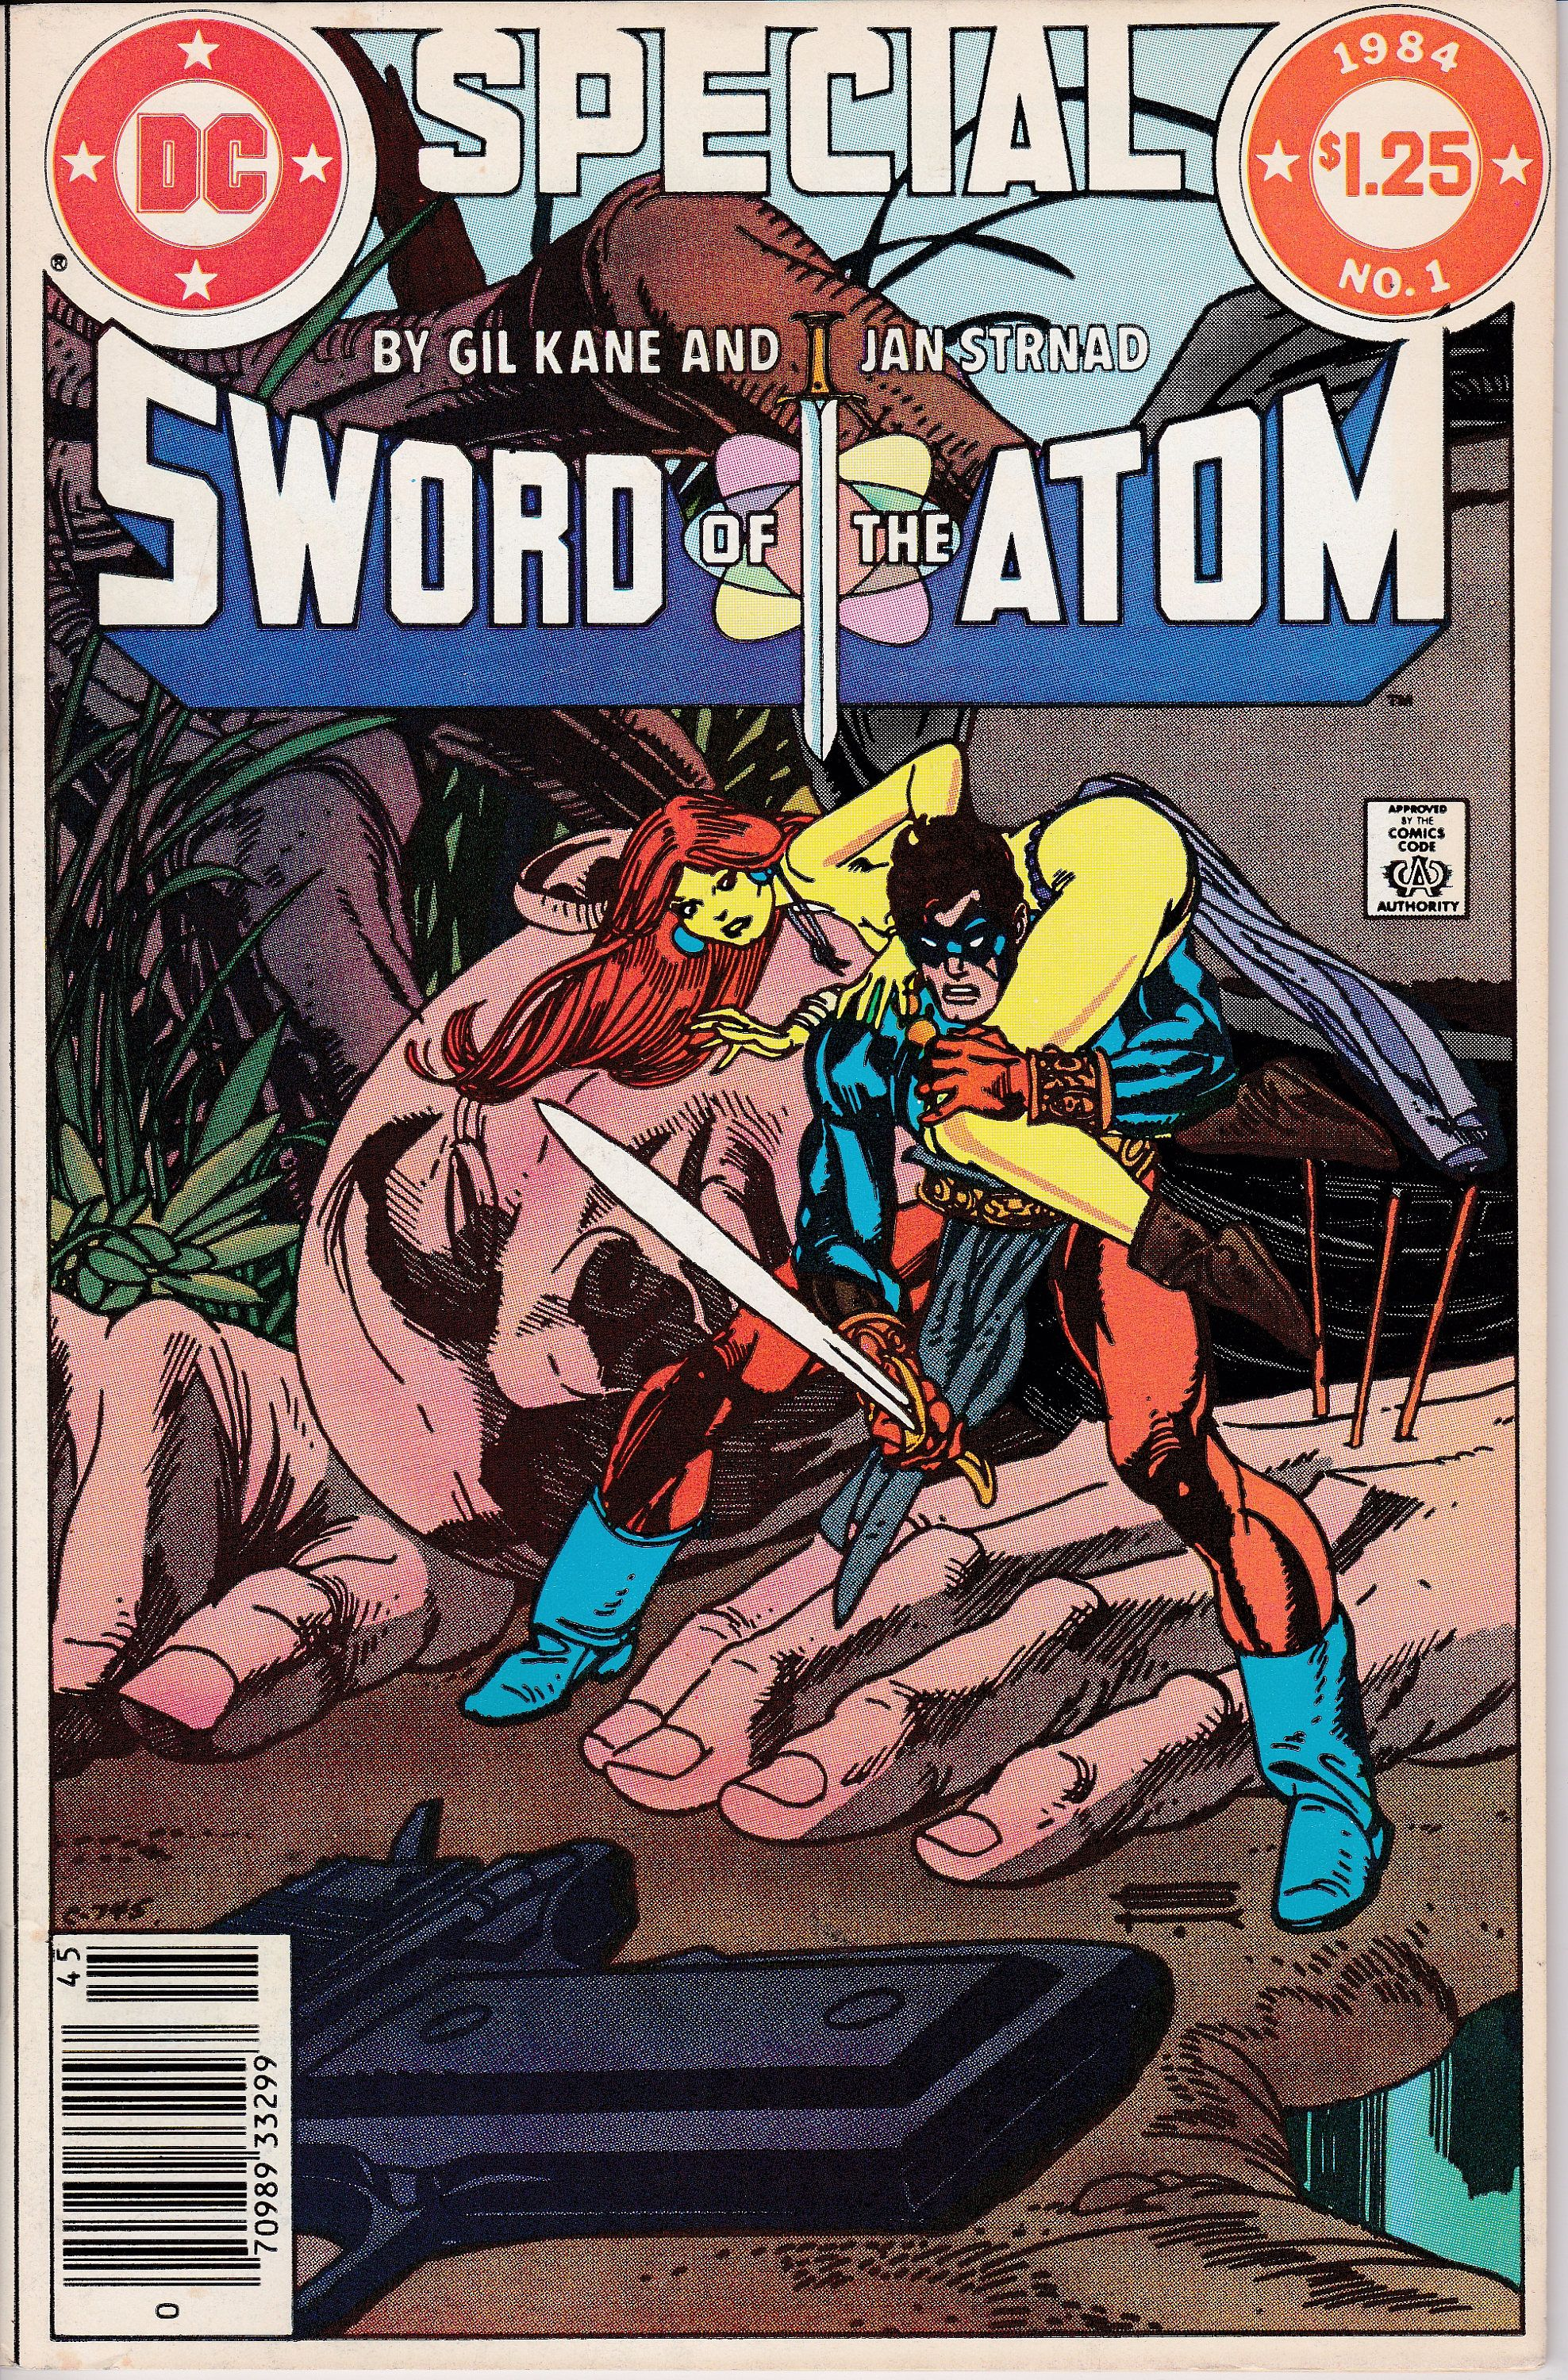 Pin on cool classic comic covers